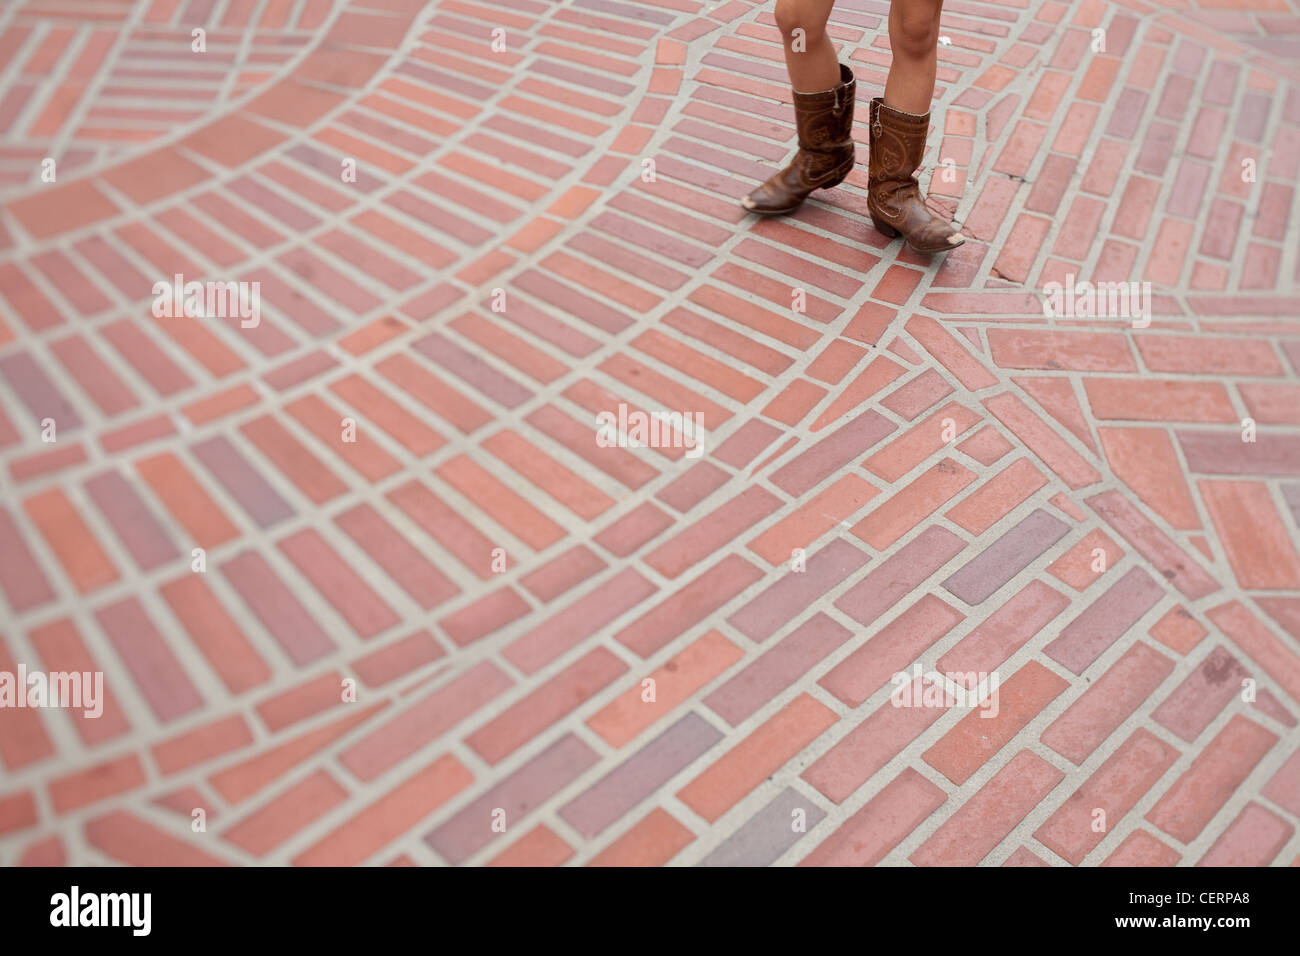 child legs in cowboy boots walking on brick design - Stock Image